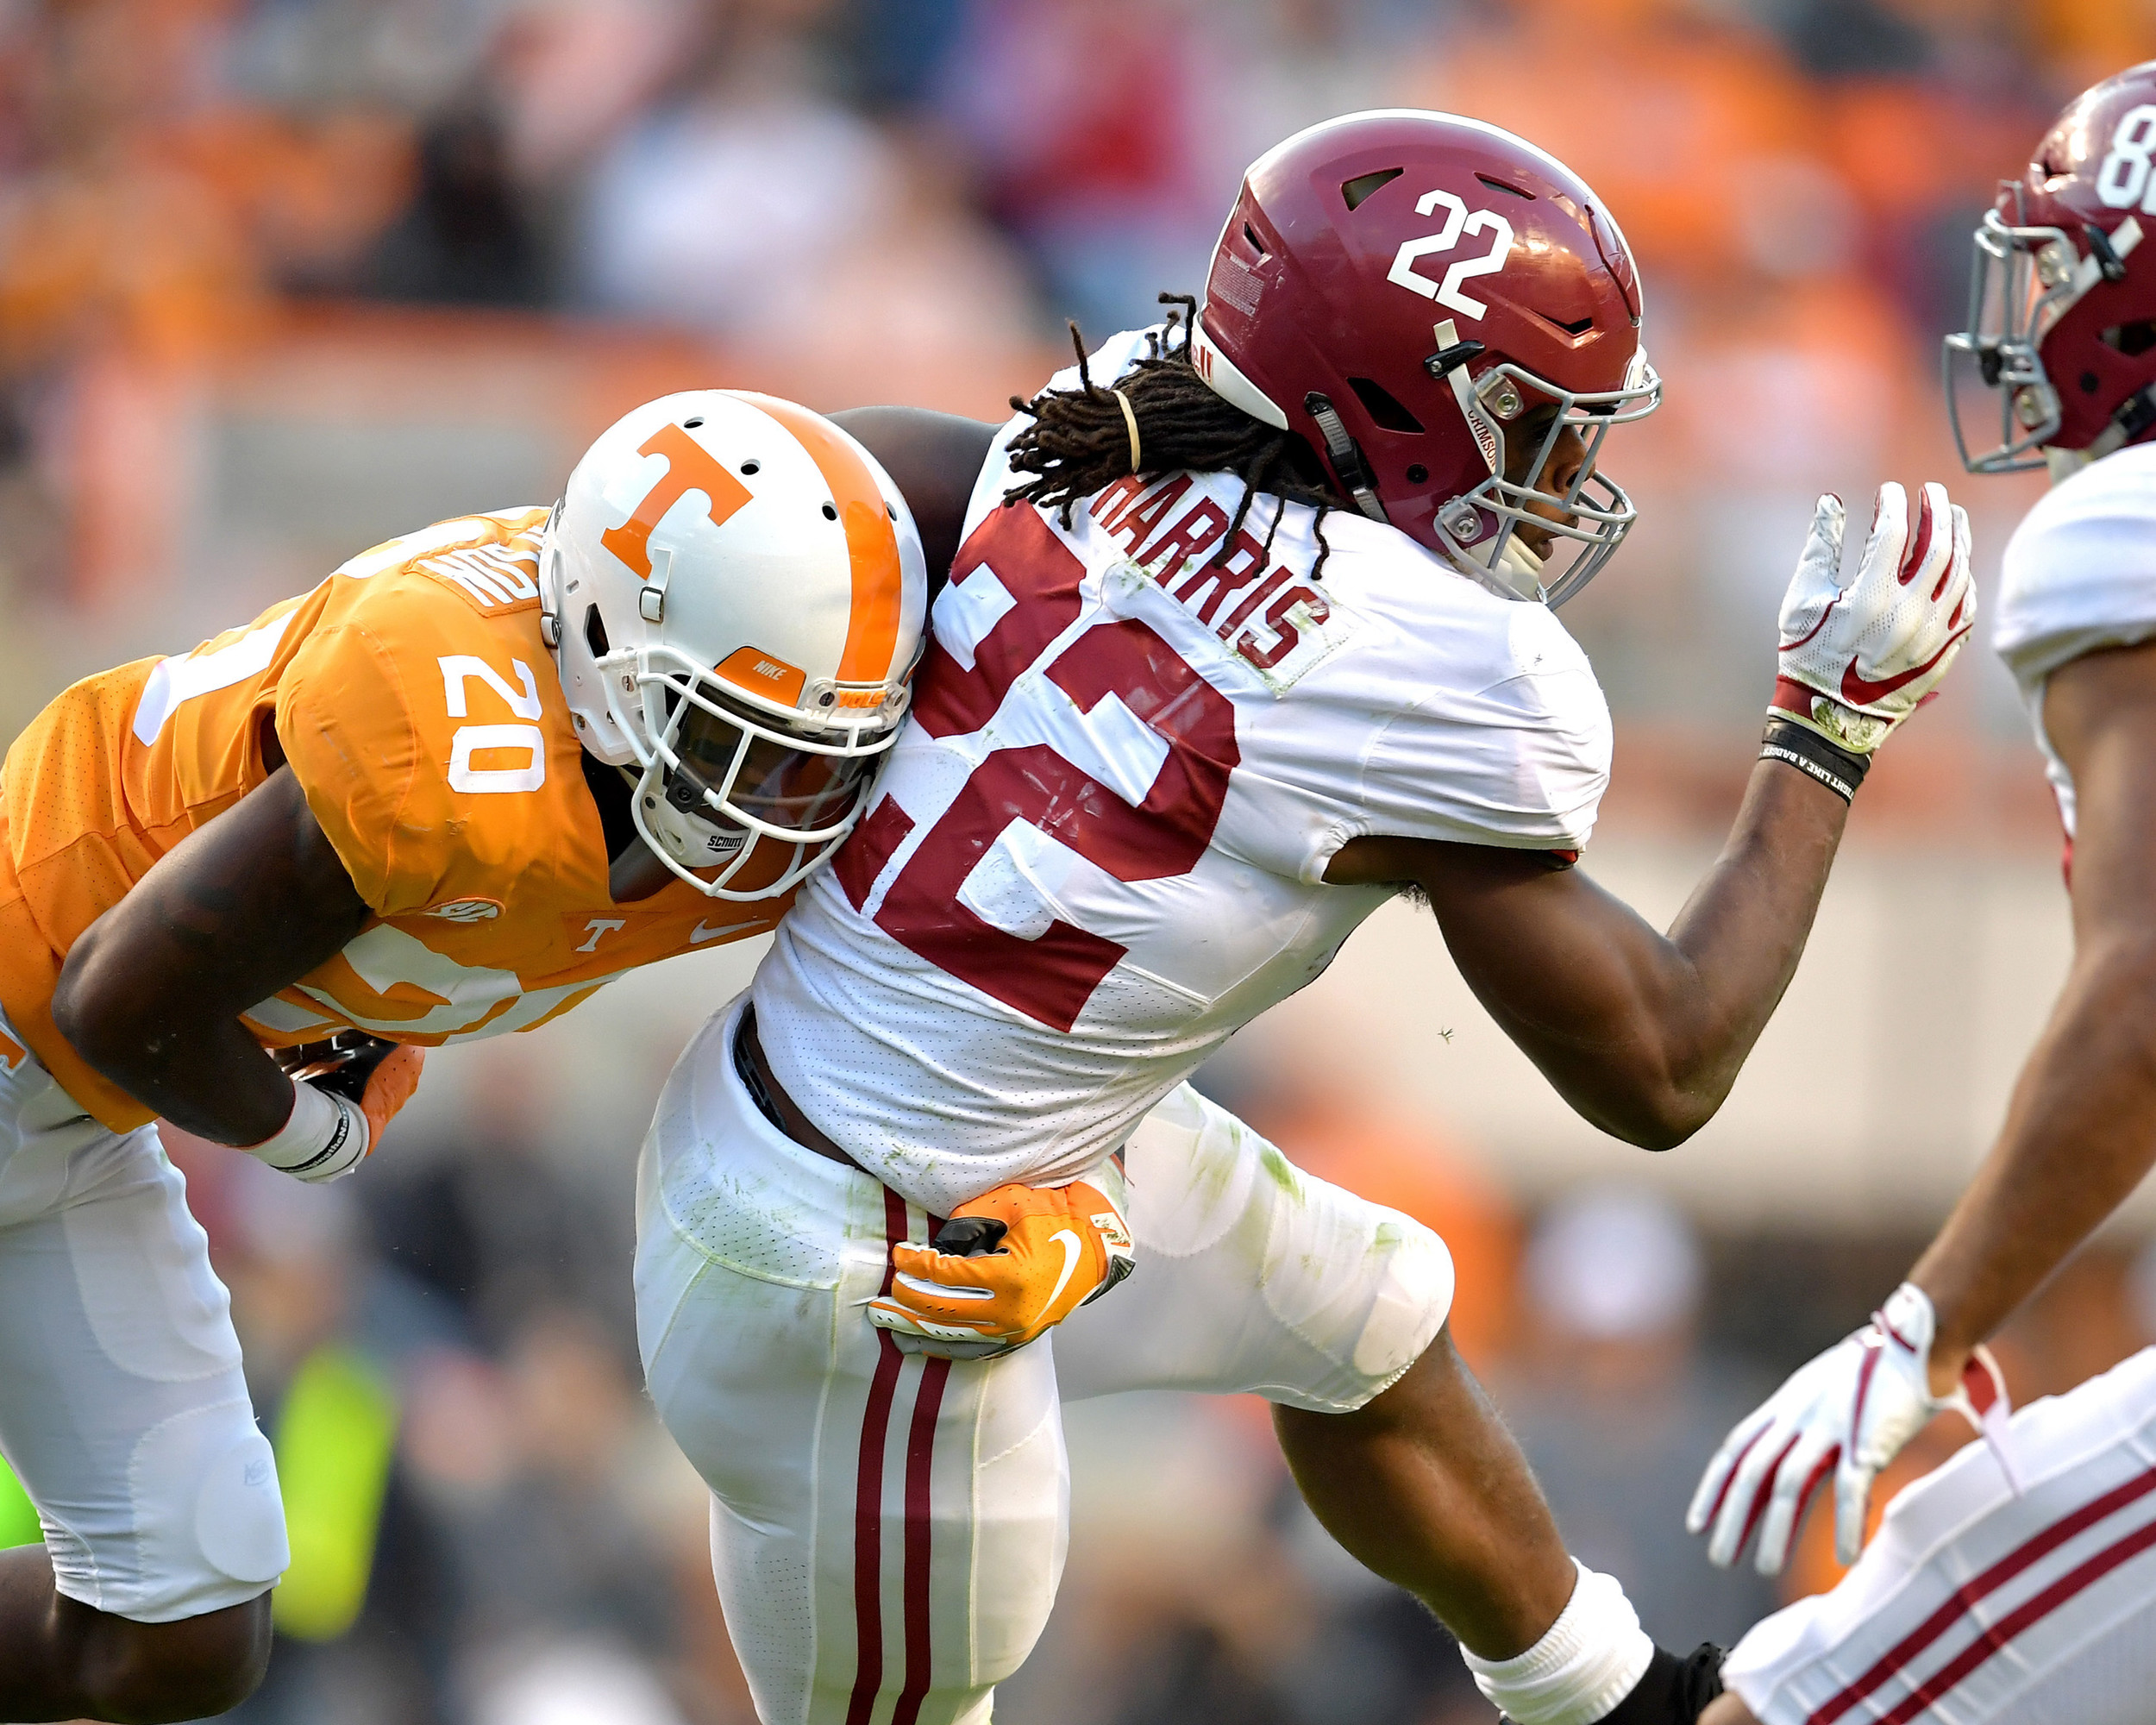 Alabama Crimson Tide running back Najee Harris (22) is seen in action in the second half of the Alabama at Tennessee NCAA football game on Saturday, Oct. 20, 2018, at Neyland Stadium in Knoxville. Tenn. Alabama wins 58-21. (Photo by Lee Walls)